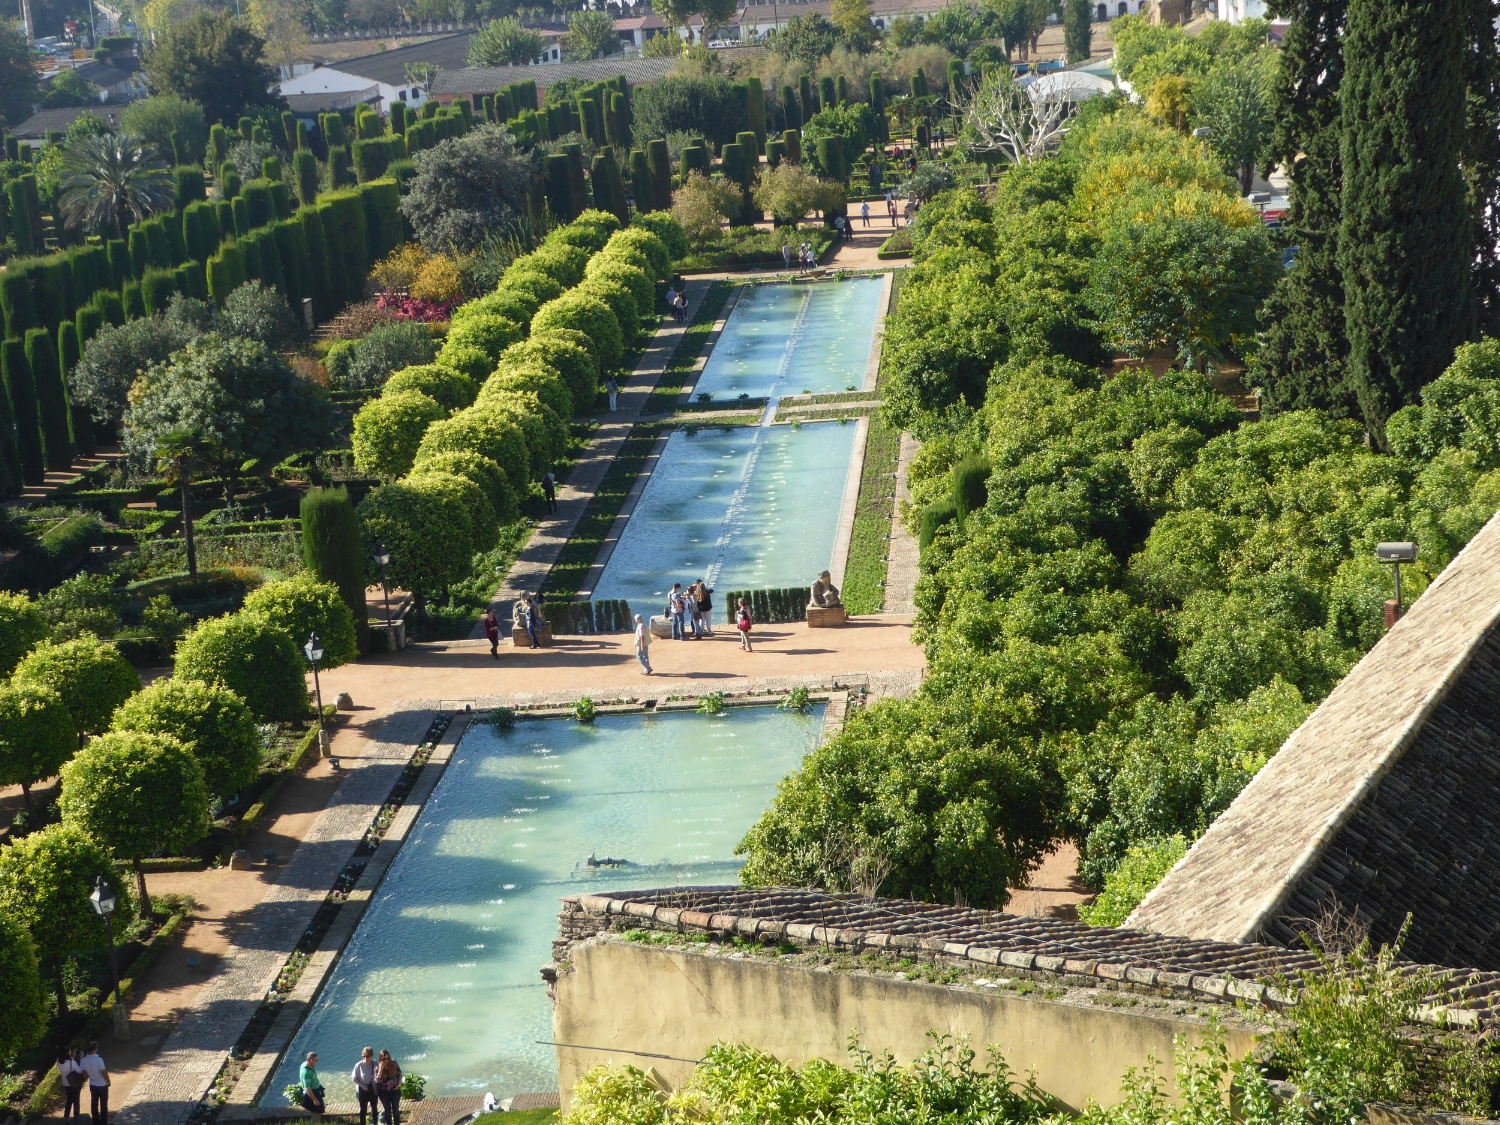 View of the Alcázar gardens from above